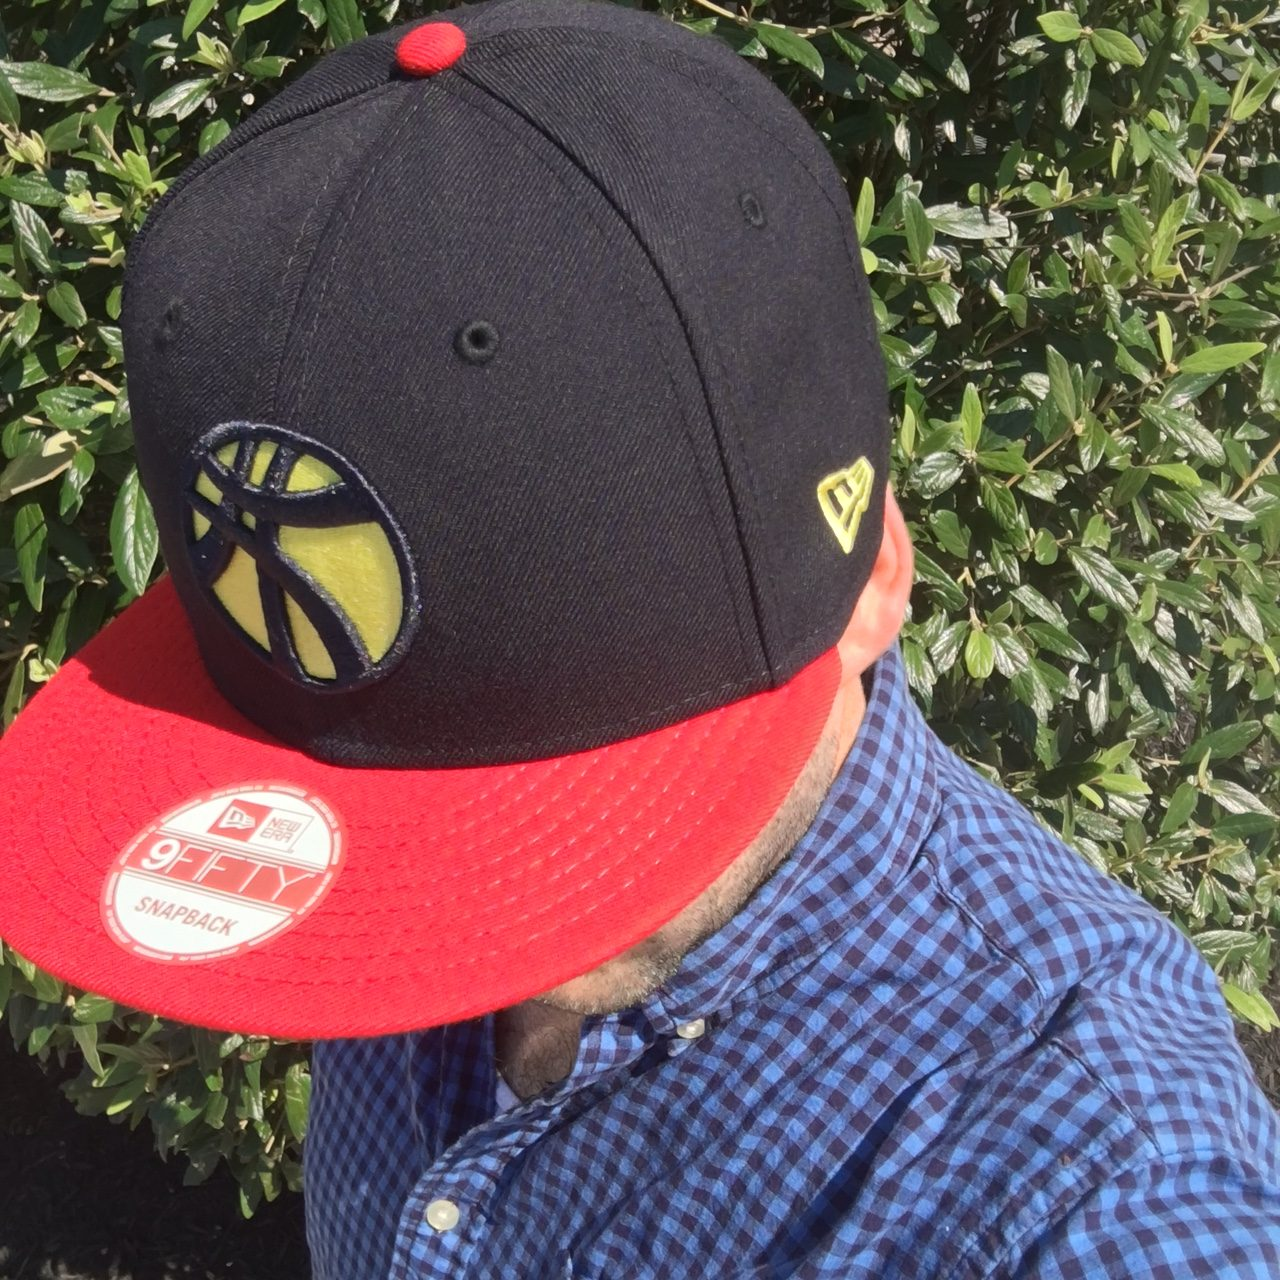 Check out Our EXCLUSIVE Dr. Strange Symbol New Era Hats!